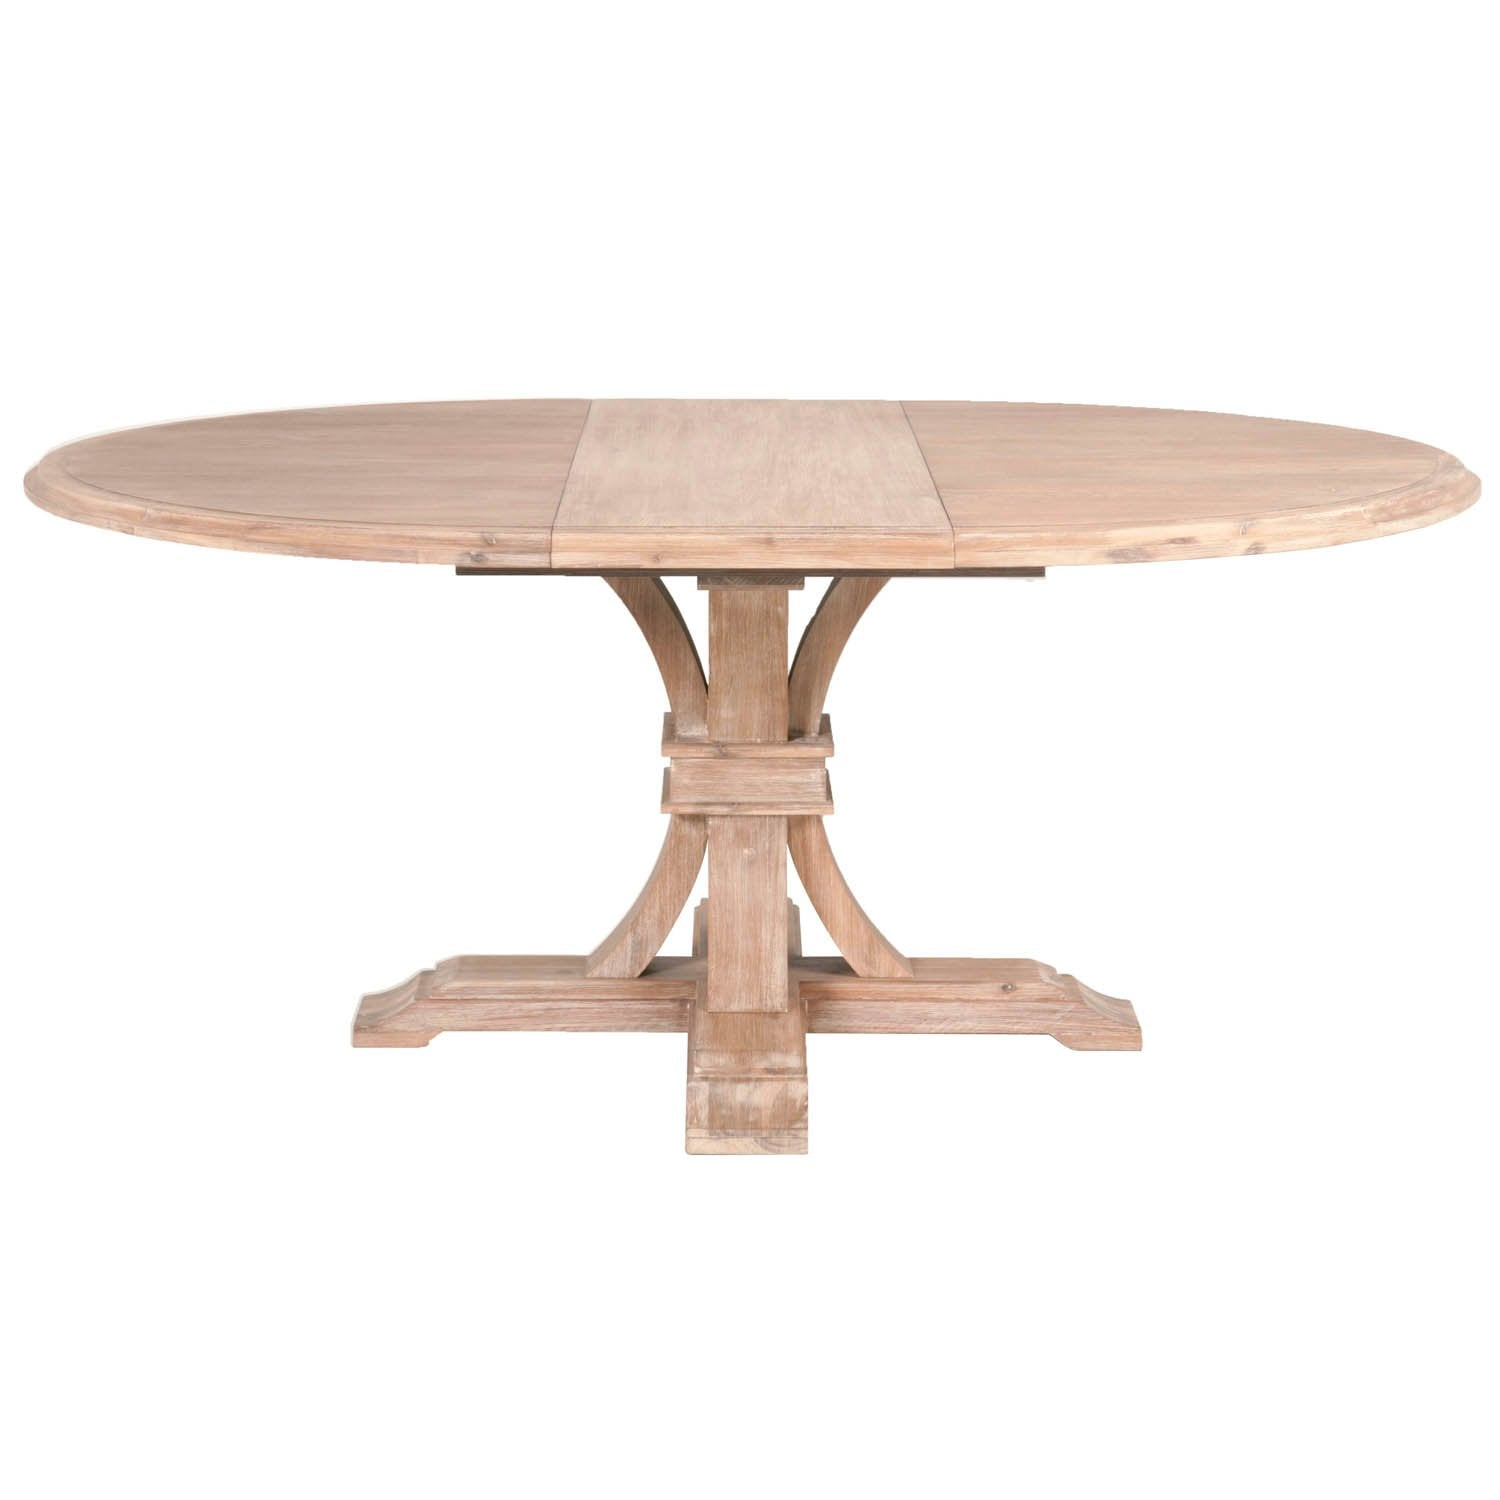 "Devon 54"" Round Extension Dining Table in Stone Wash"